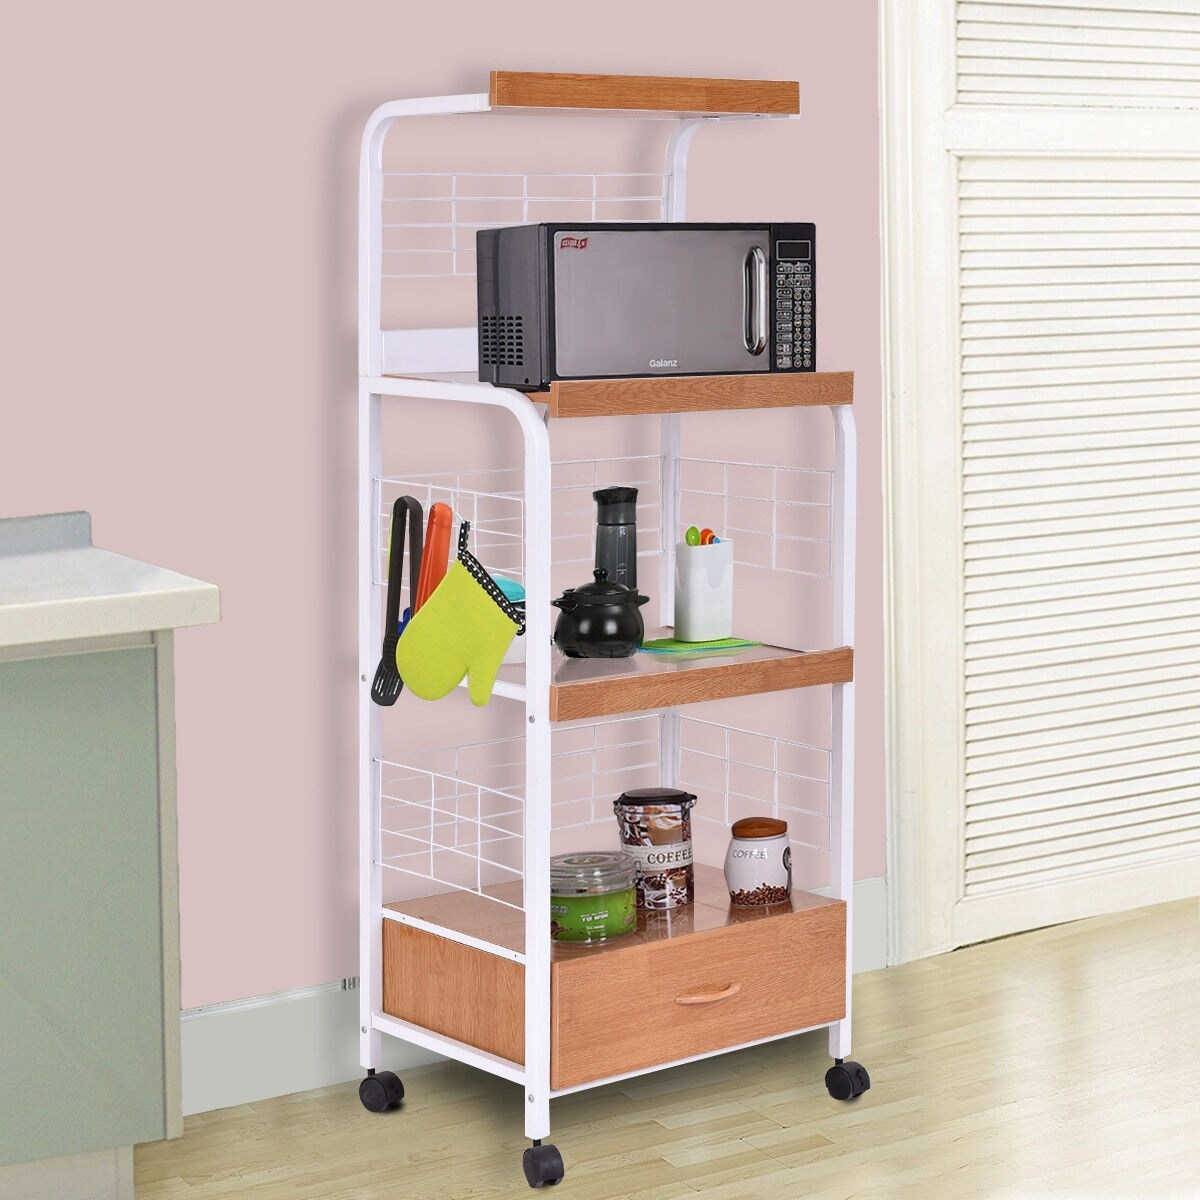 costway 62 bakers rack microwave stand rolling kitchen storage cart